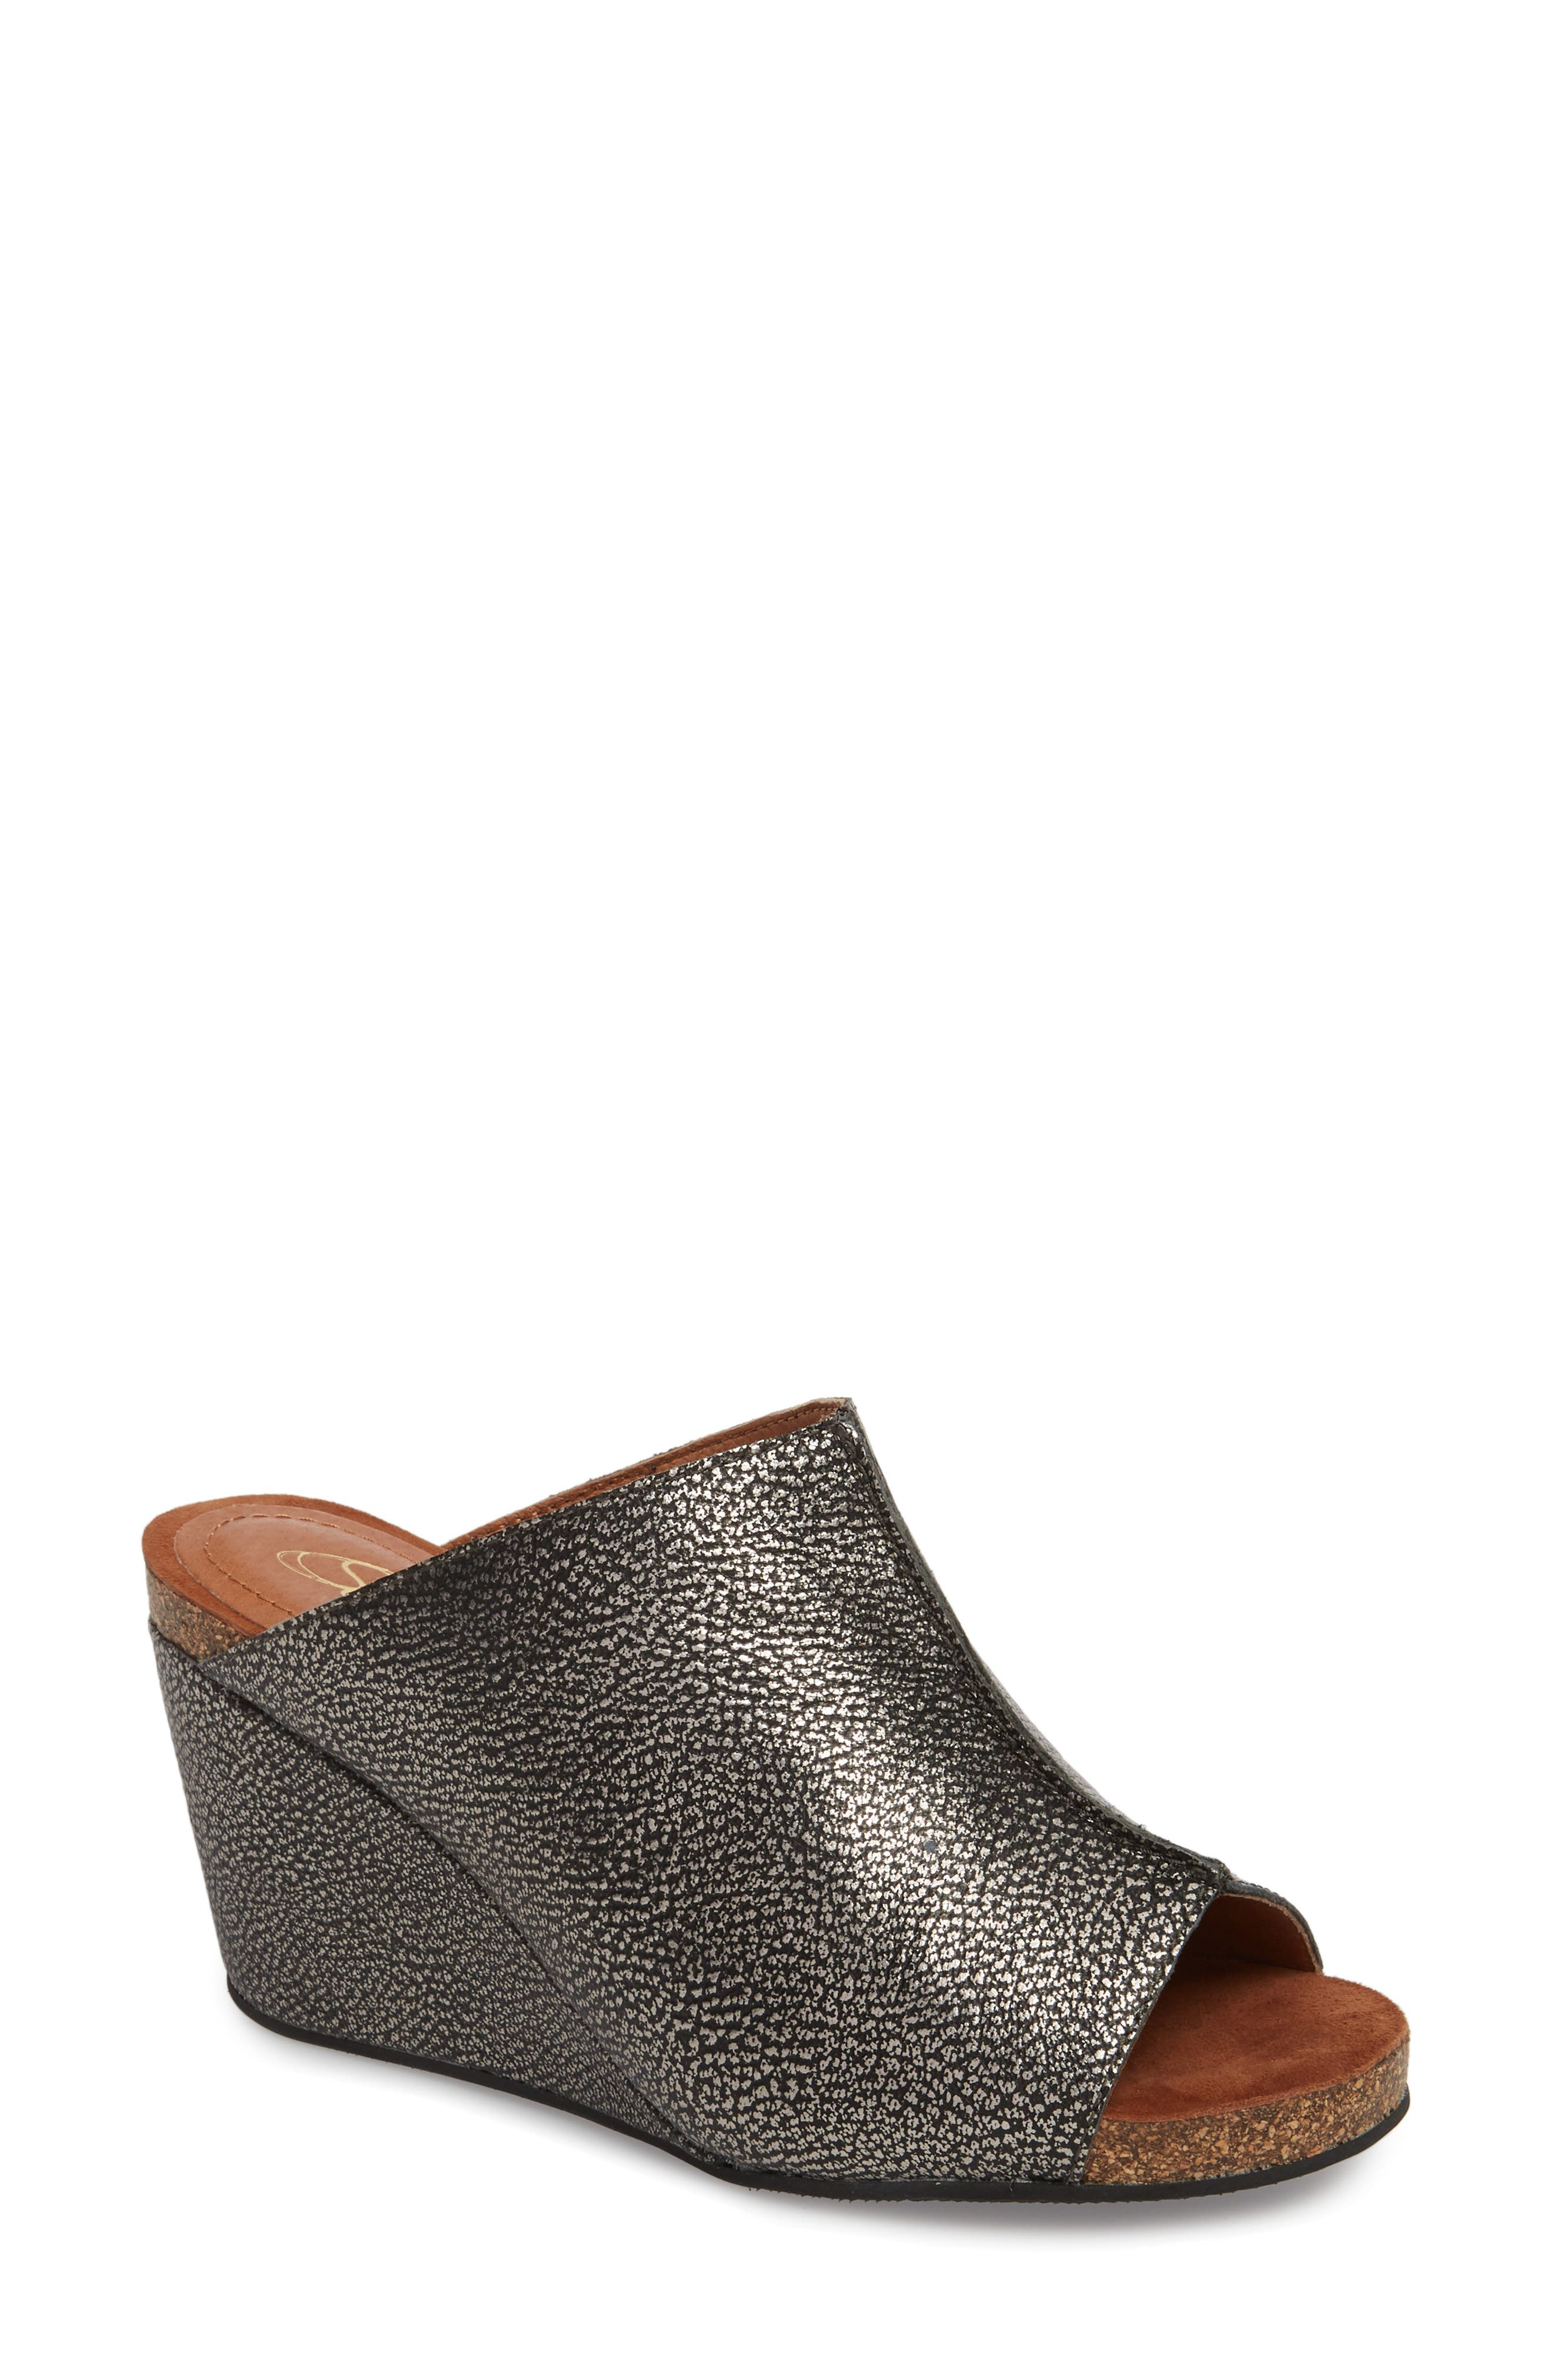 SUDINI 'Bailey' Suede Wedge, Main, color, PEWTER LEATHER